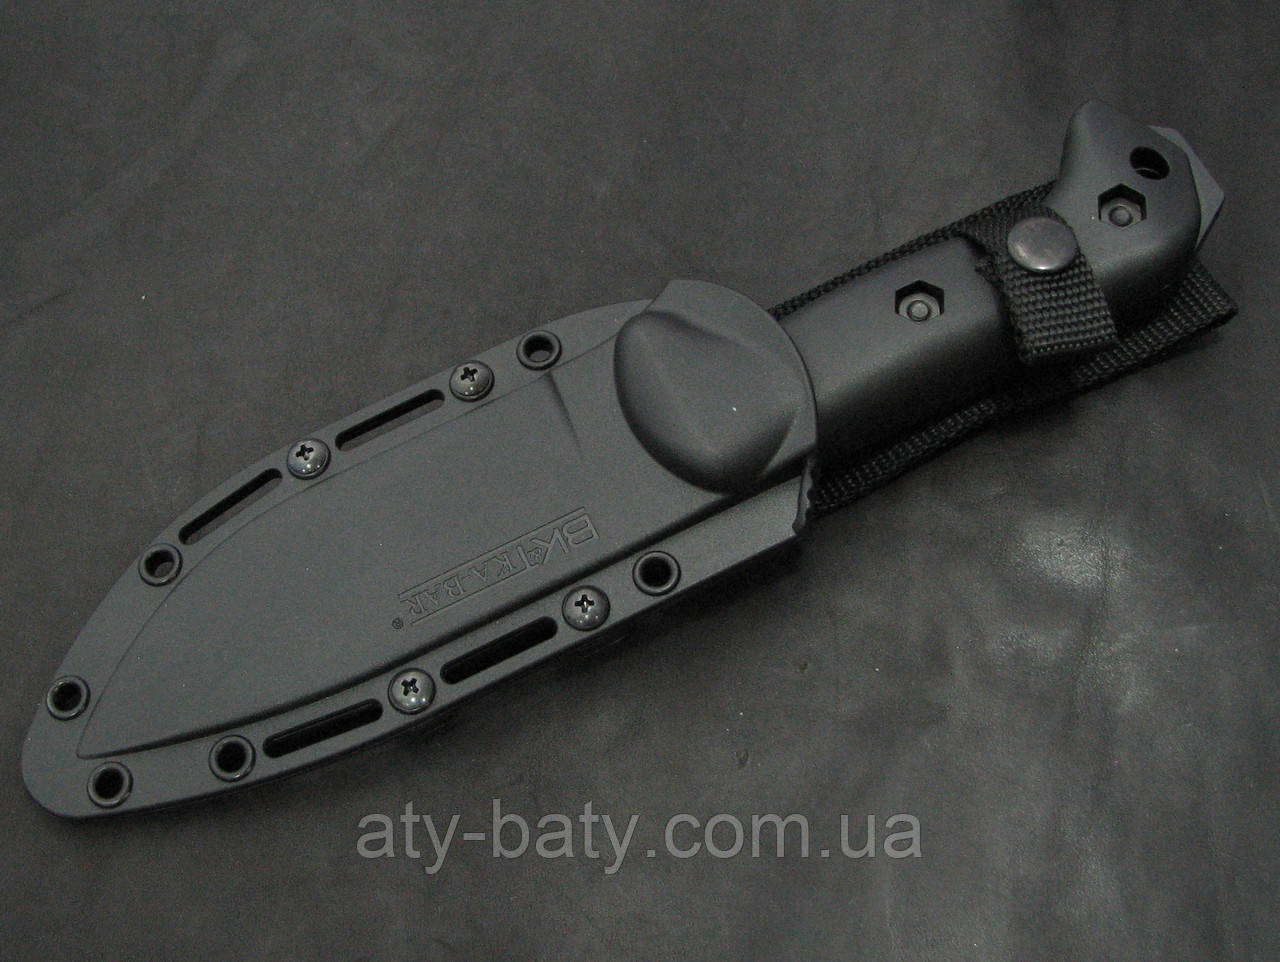 Нож Ka-Bar Becker BK2, фото 1